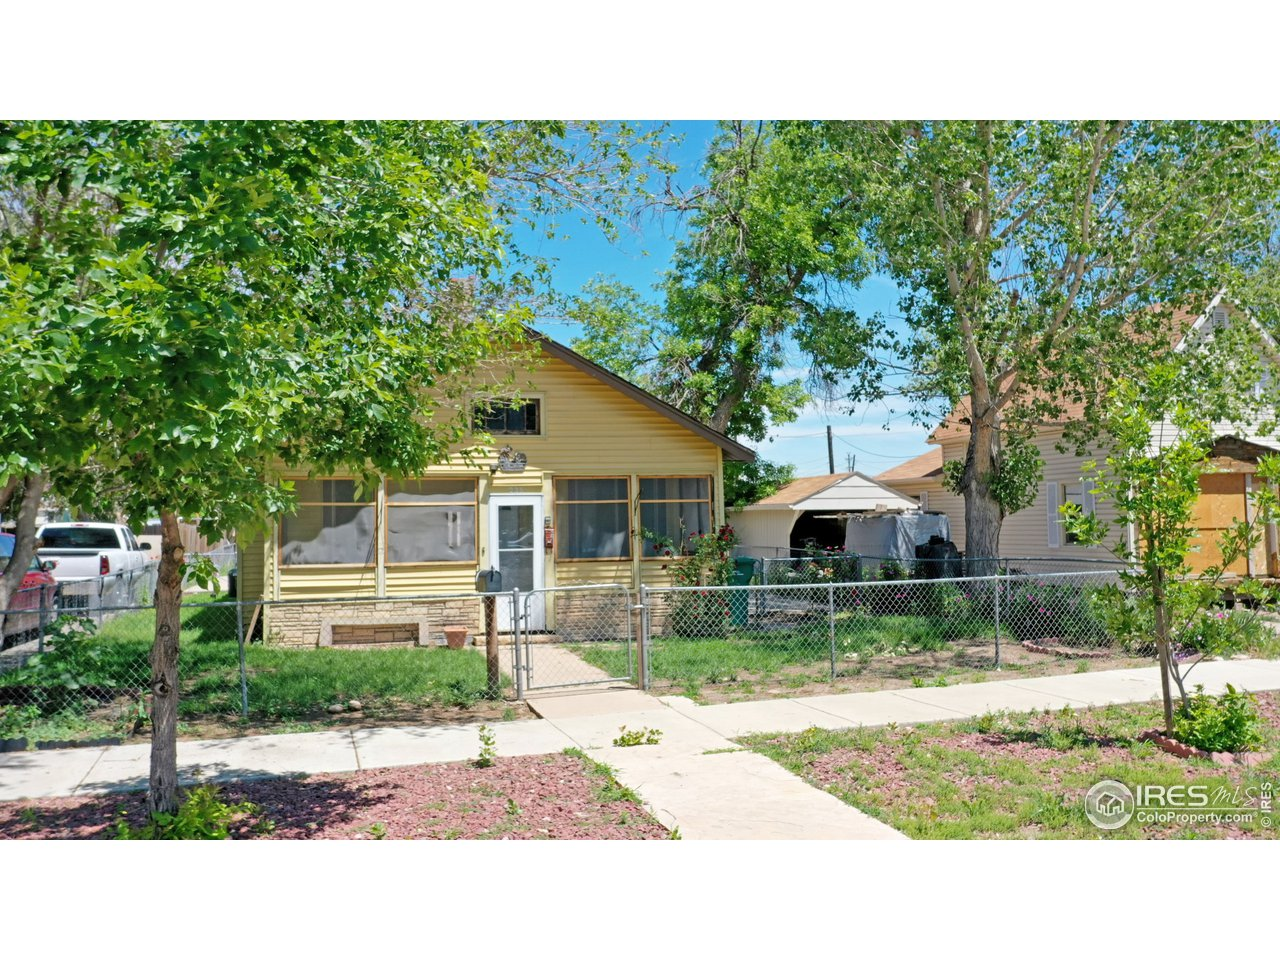 225 14th St, Greeley CO 80631